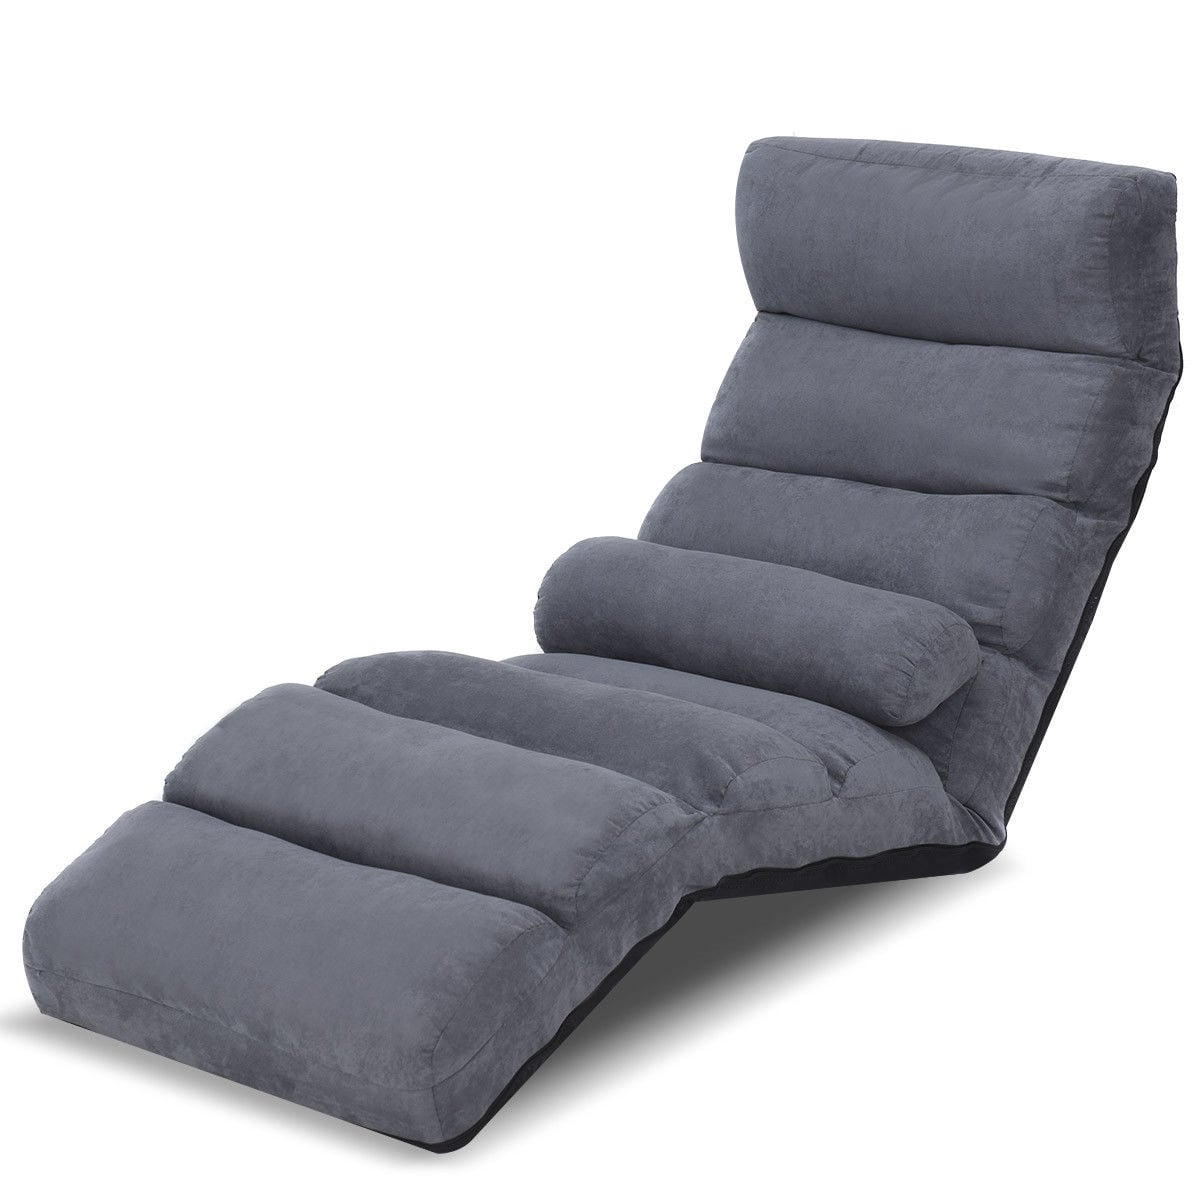 Floor Lounge Chair Gymax Adjustable Floor Chair Beds Lounge Chair Folding Lazy Sofa Gray